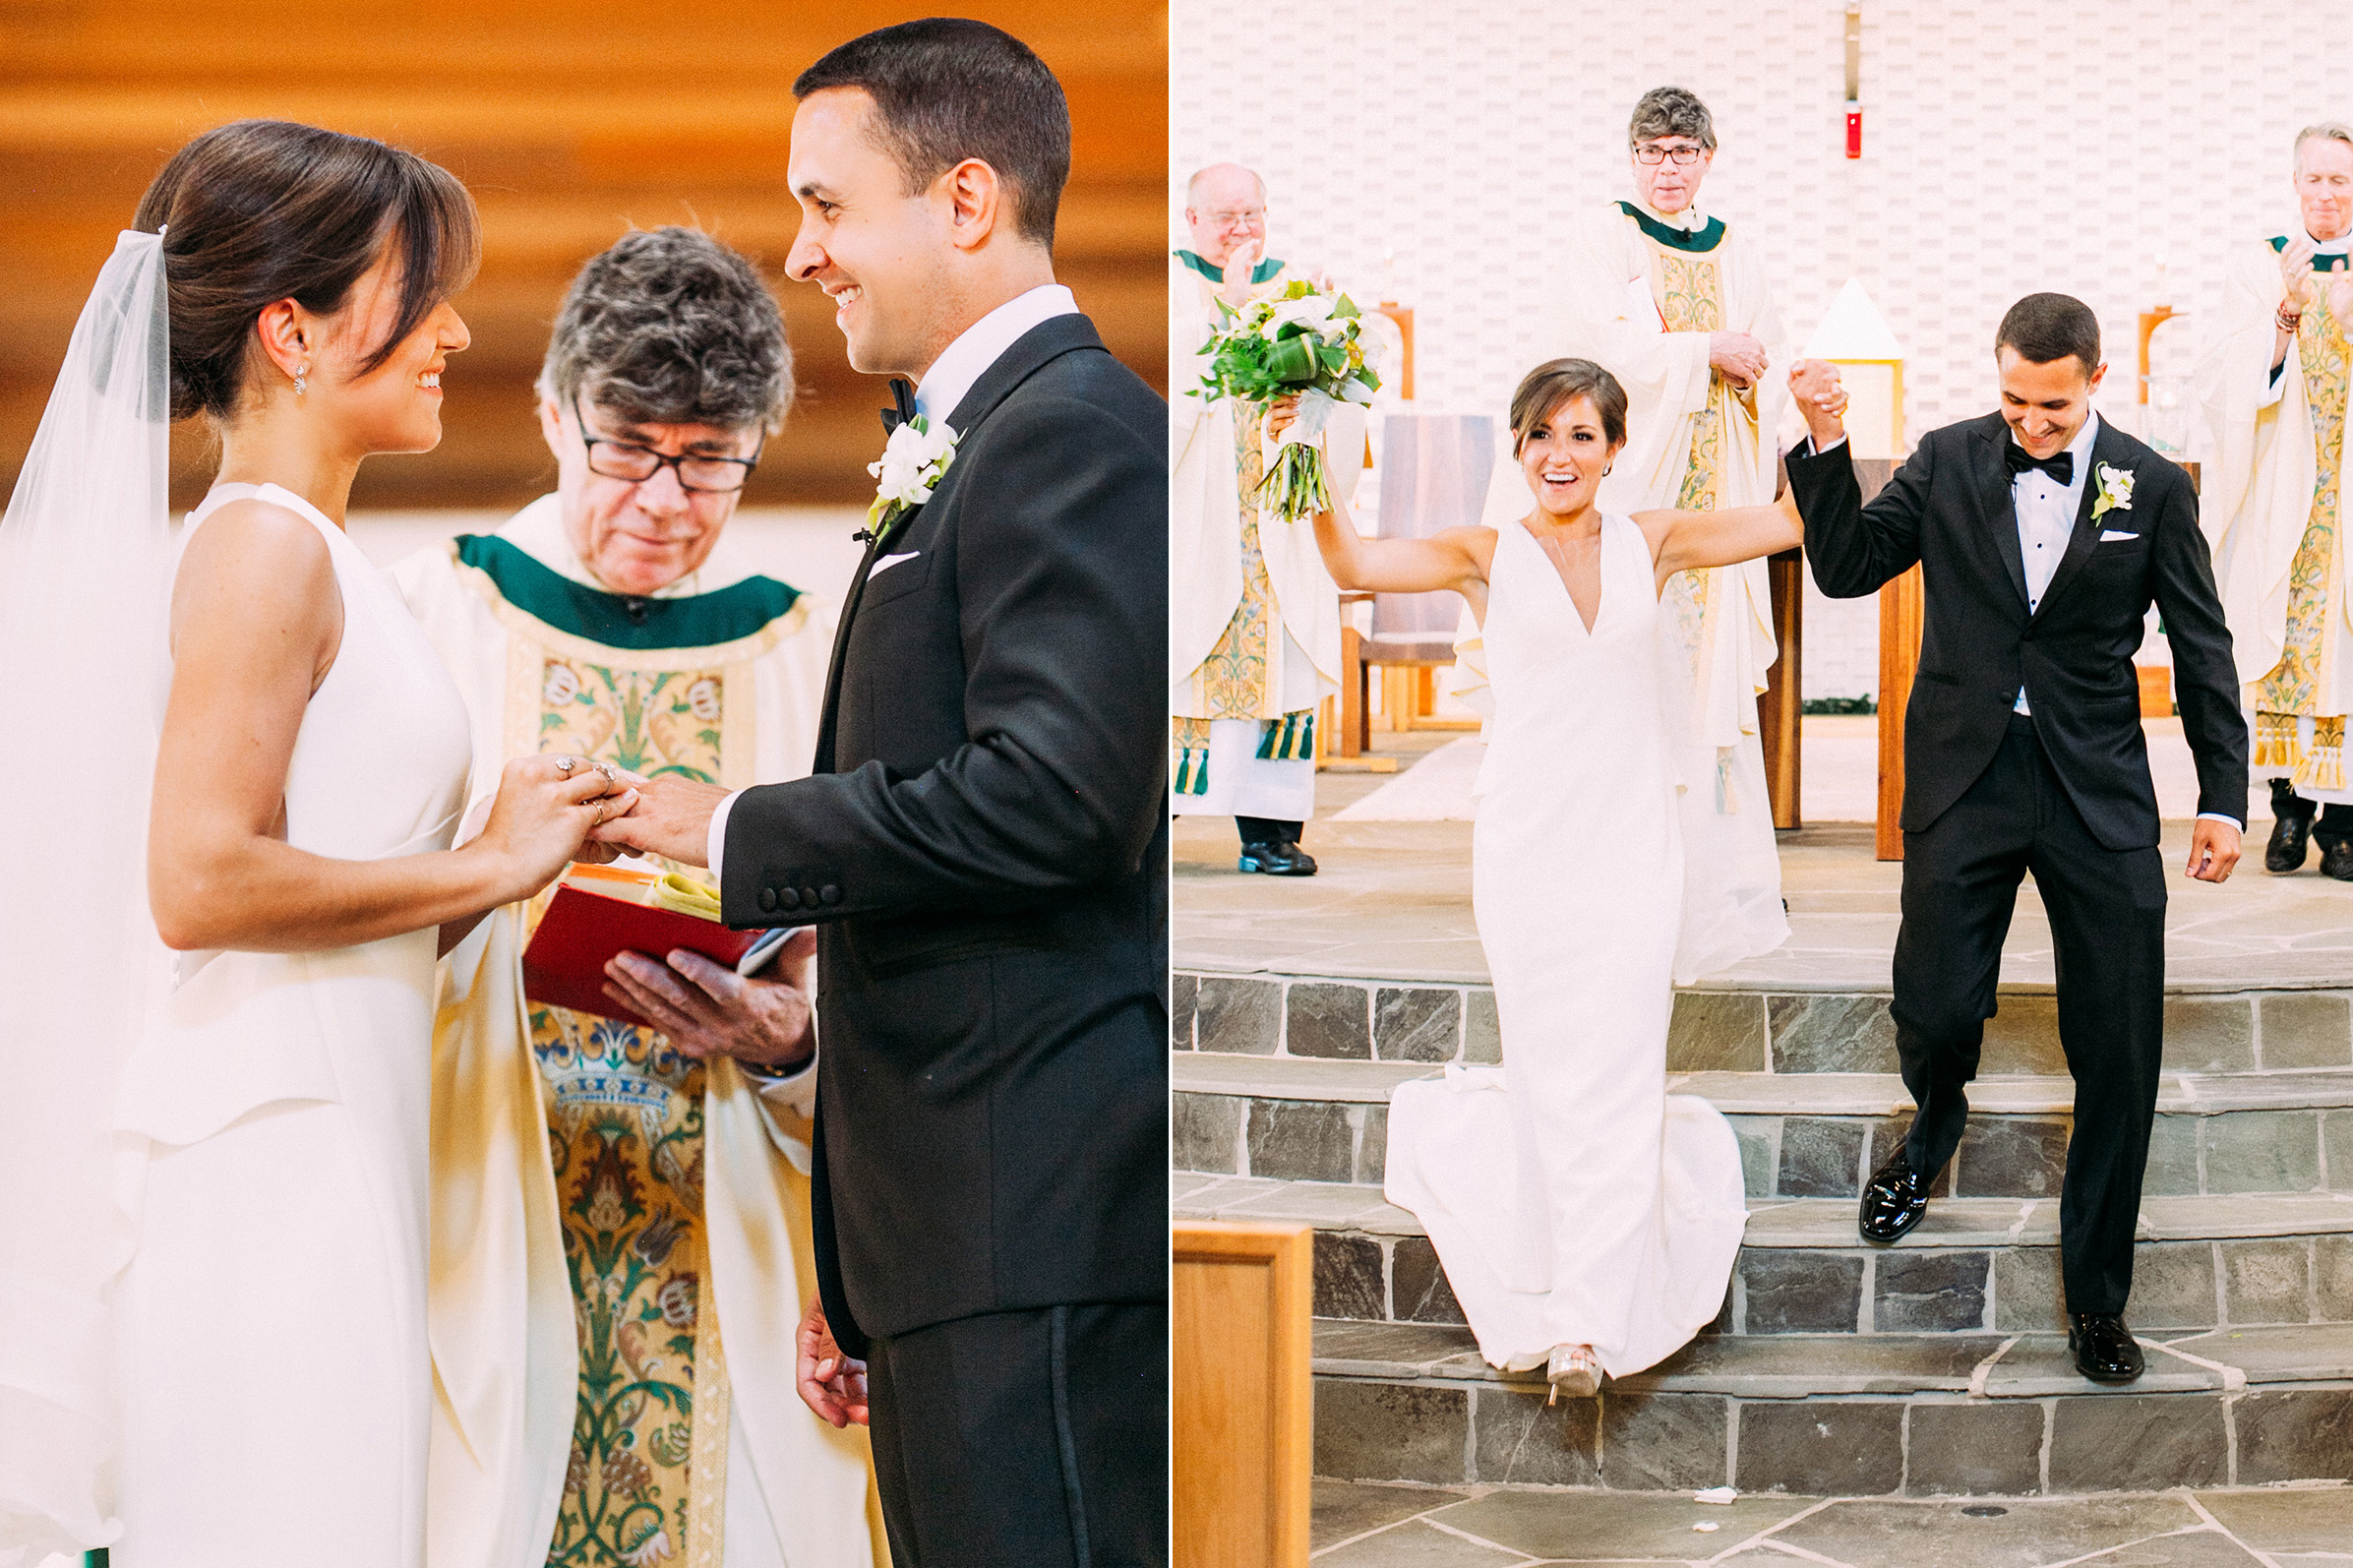 katie stoops photography-solomans island wedding36.jpg